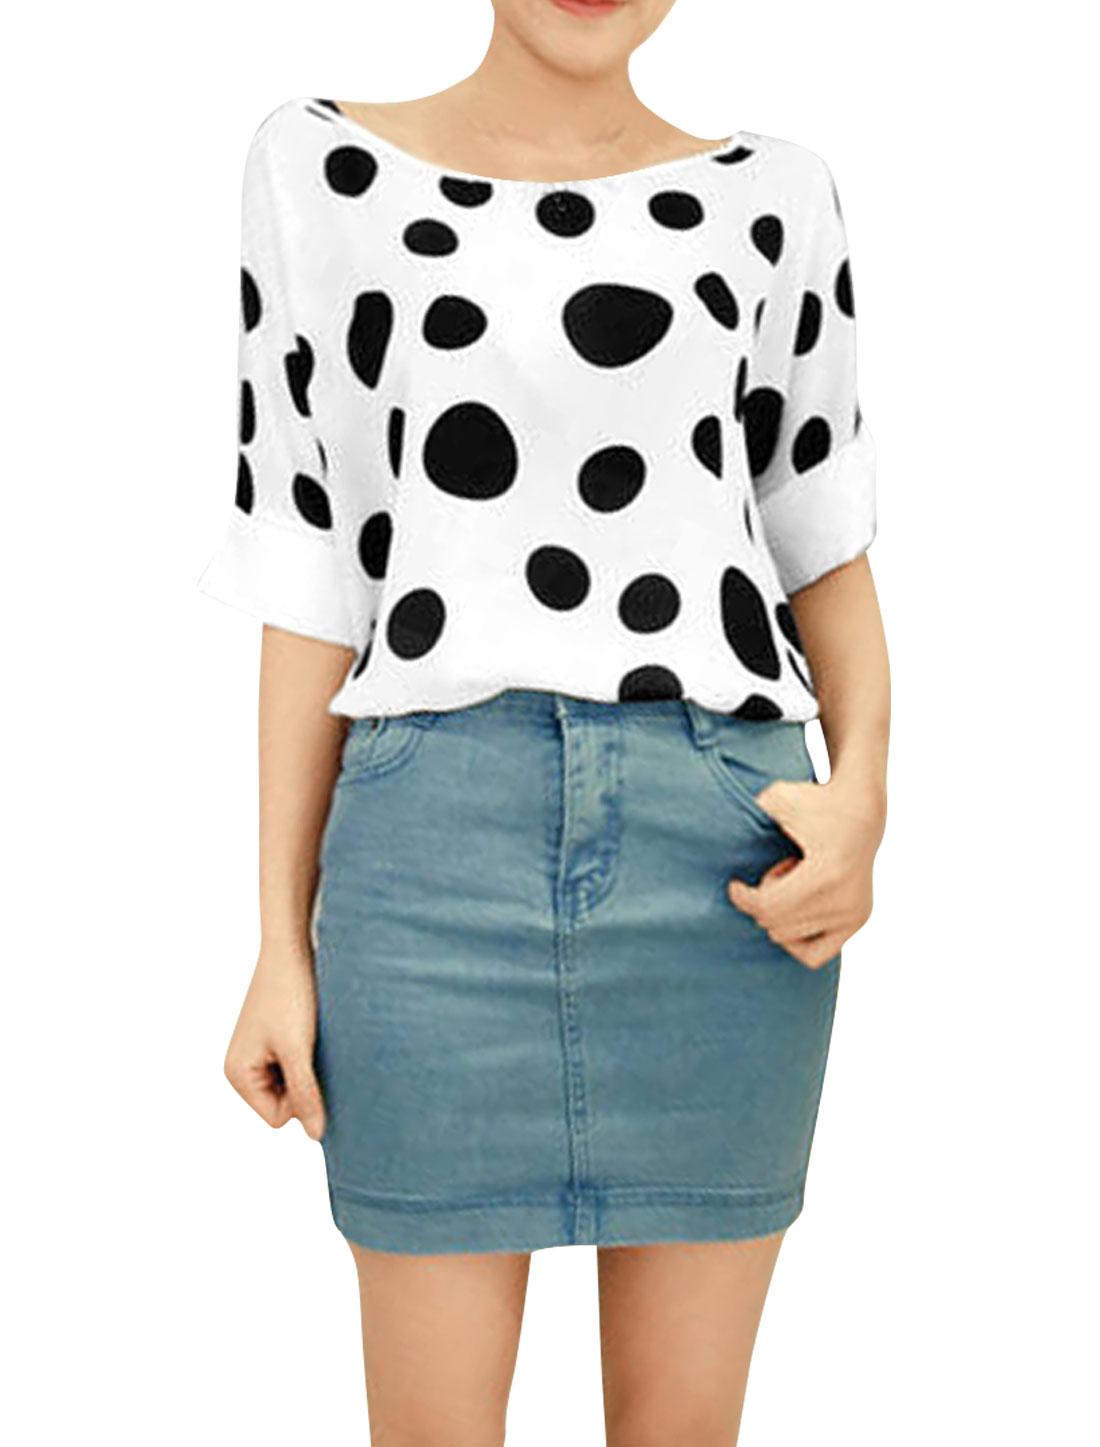 Women Dots Prints Round Neck Leisure Chic Shirts White S